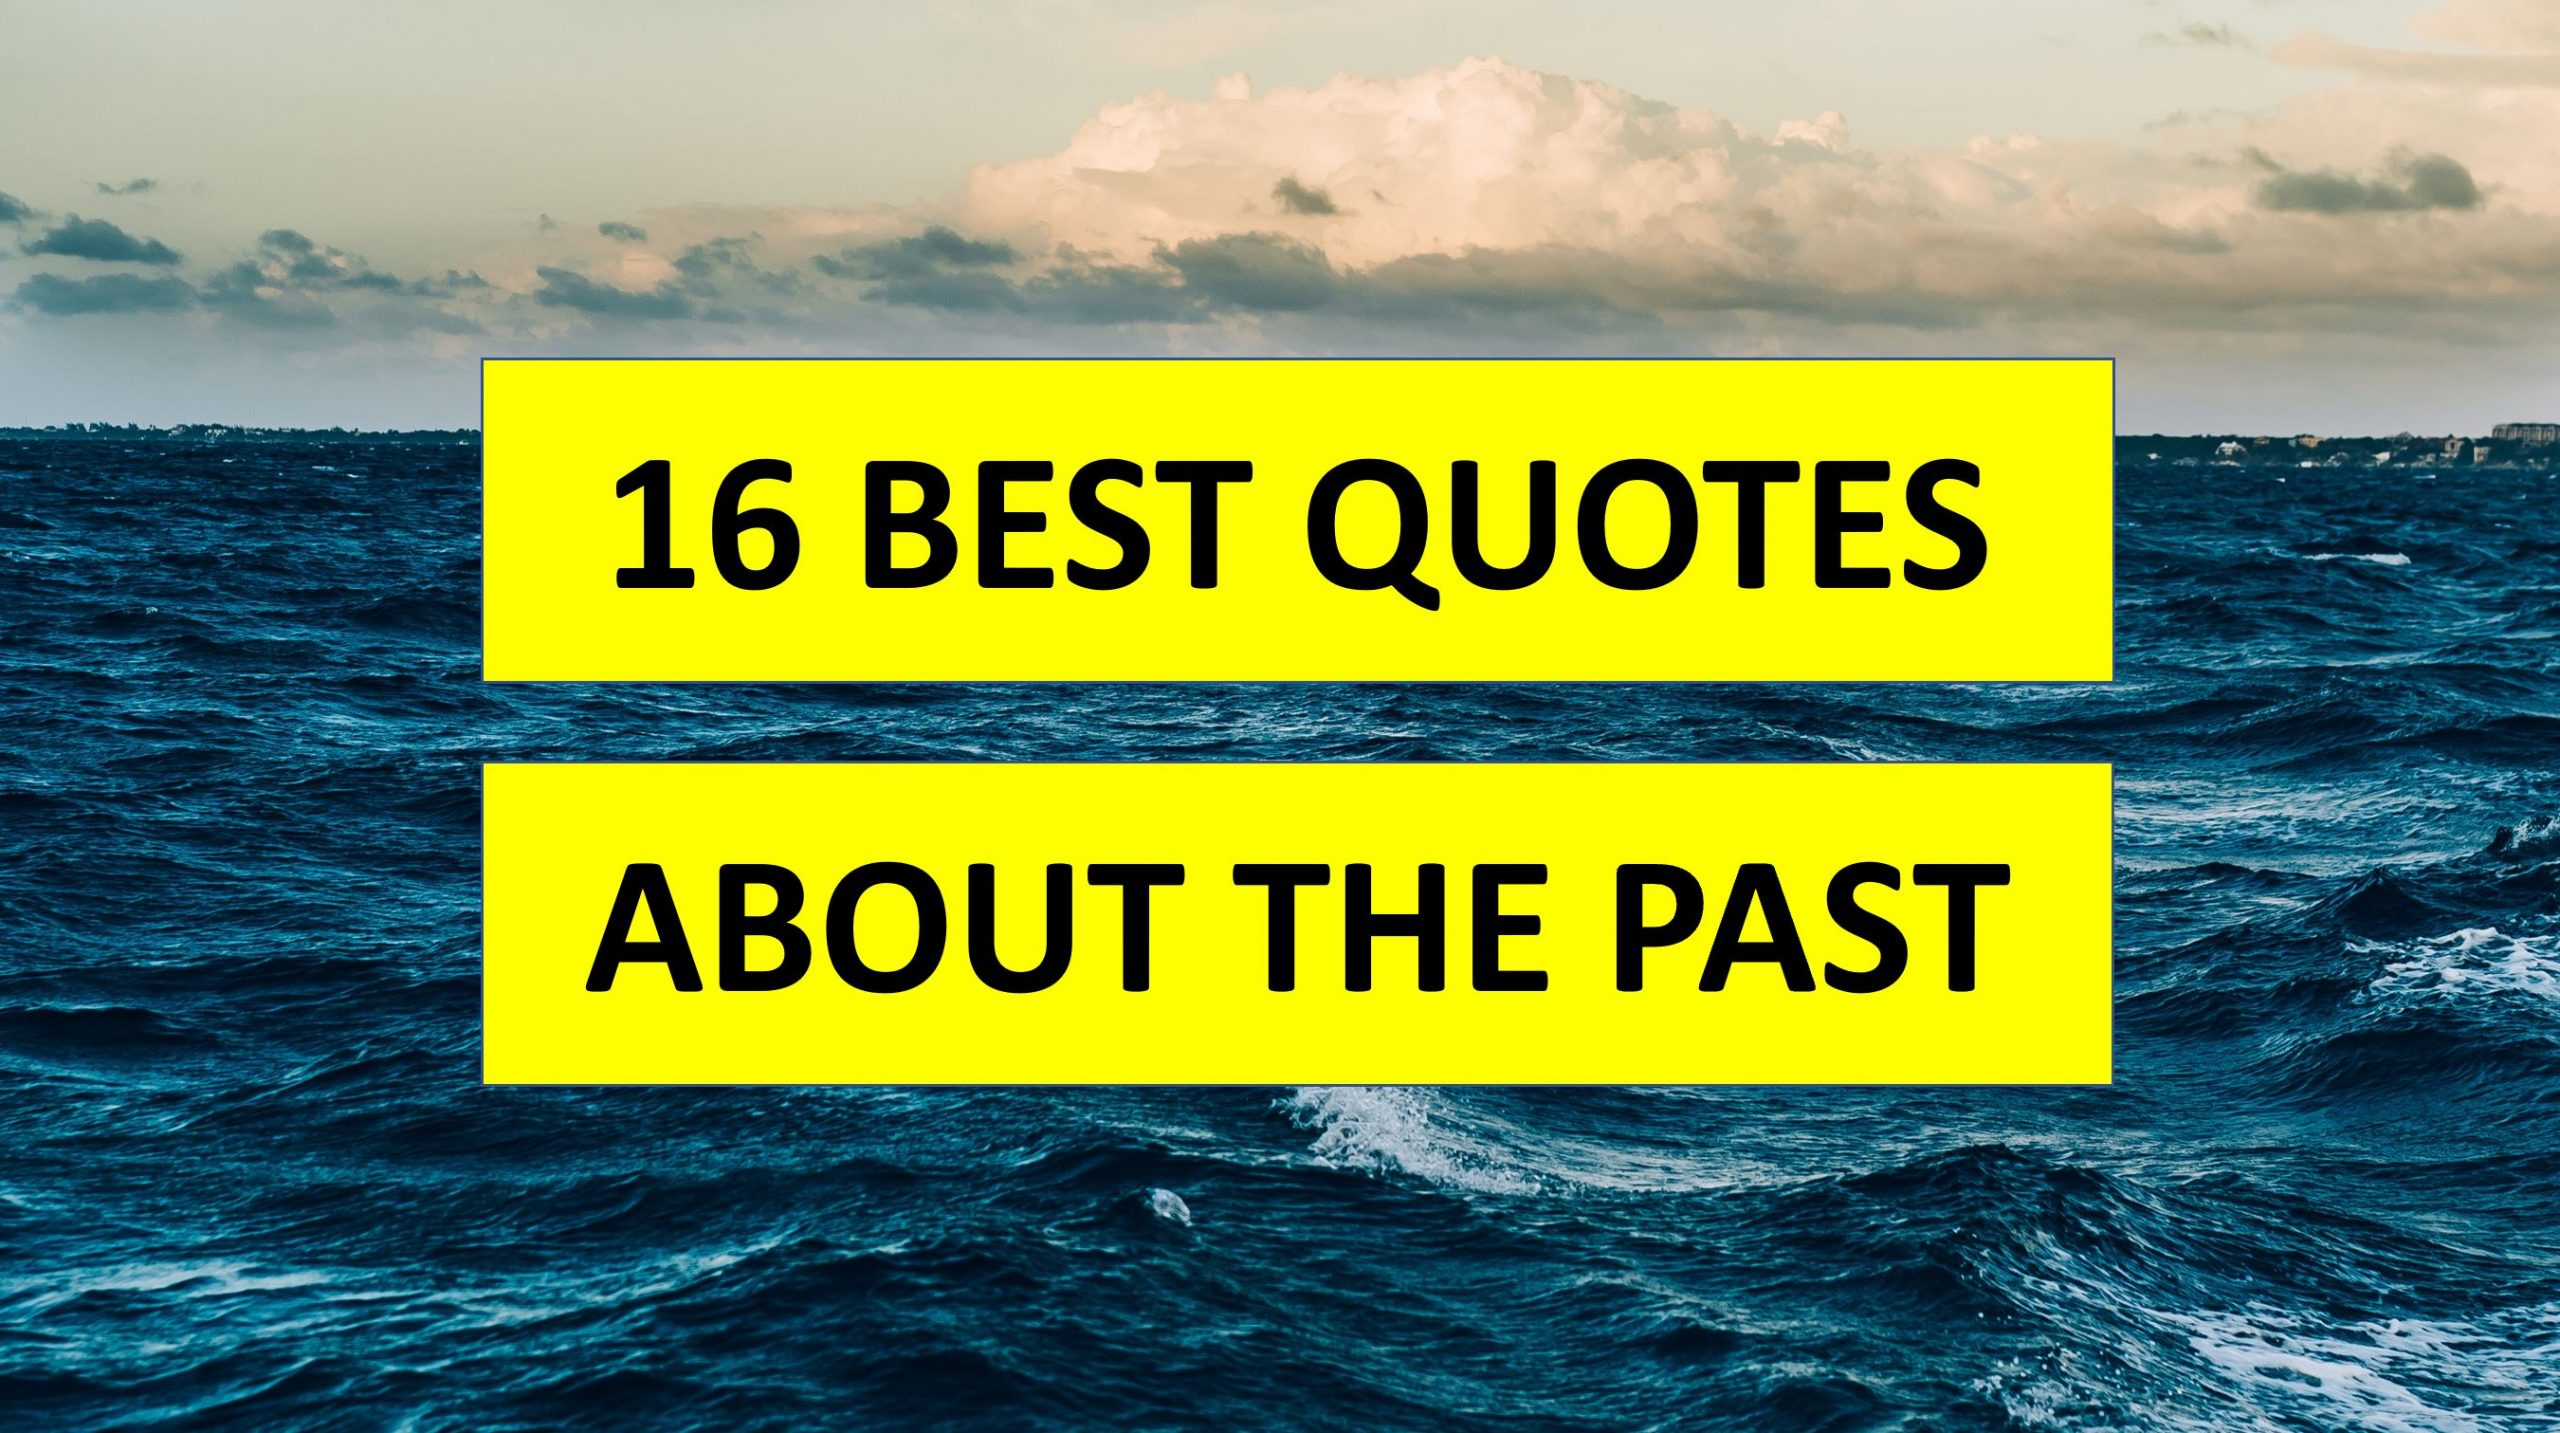 16 Quotes About the Past